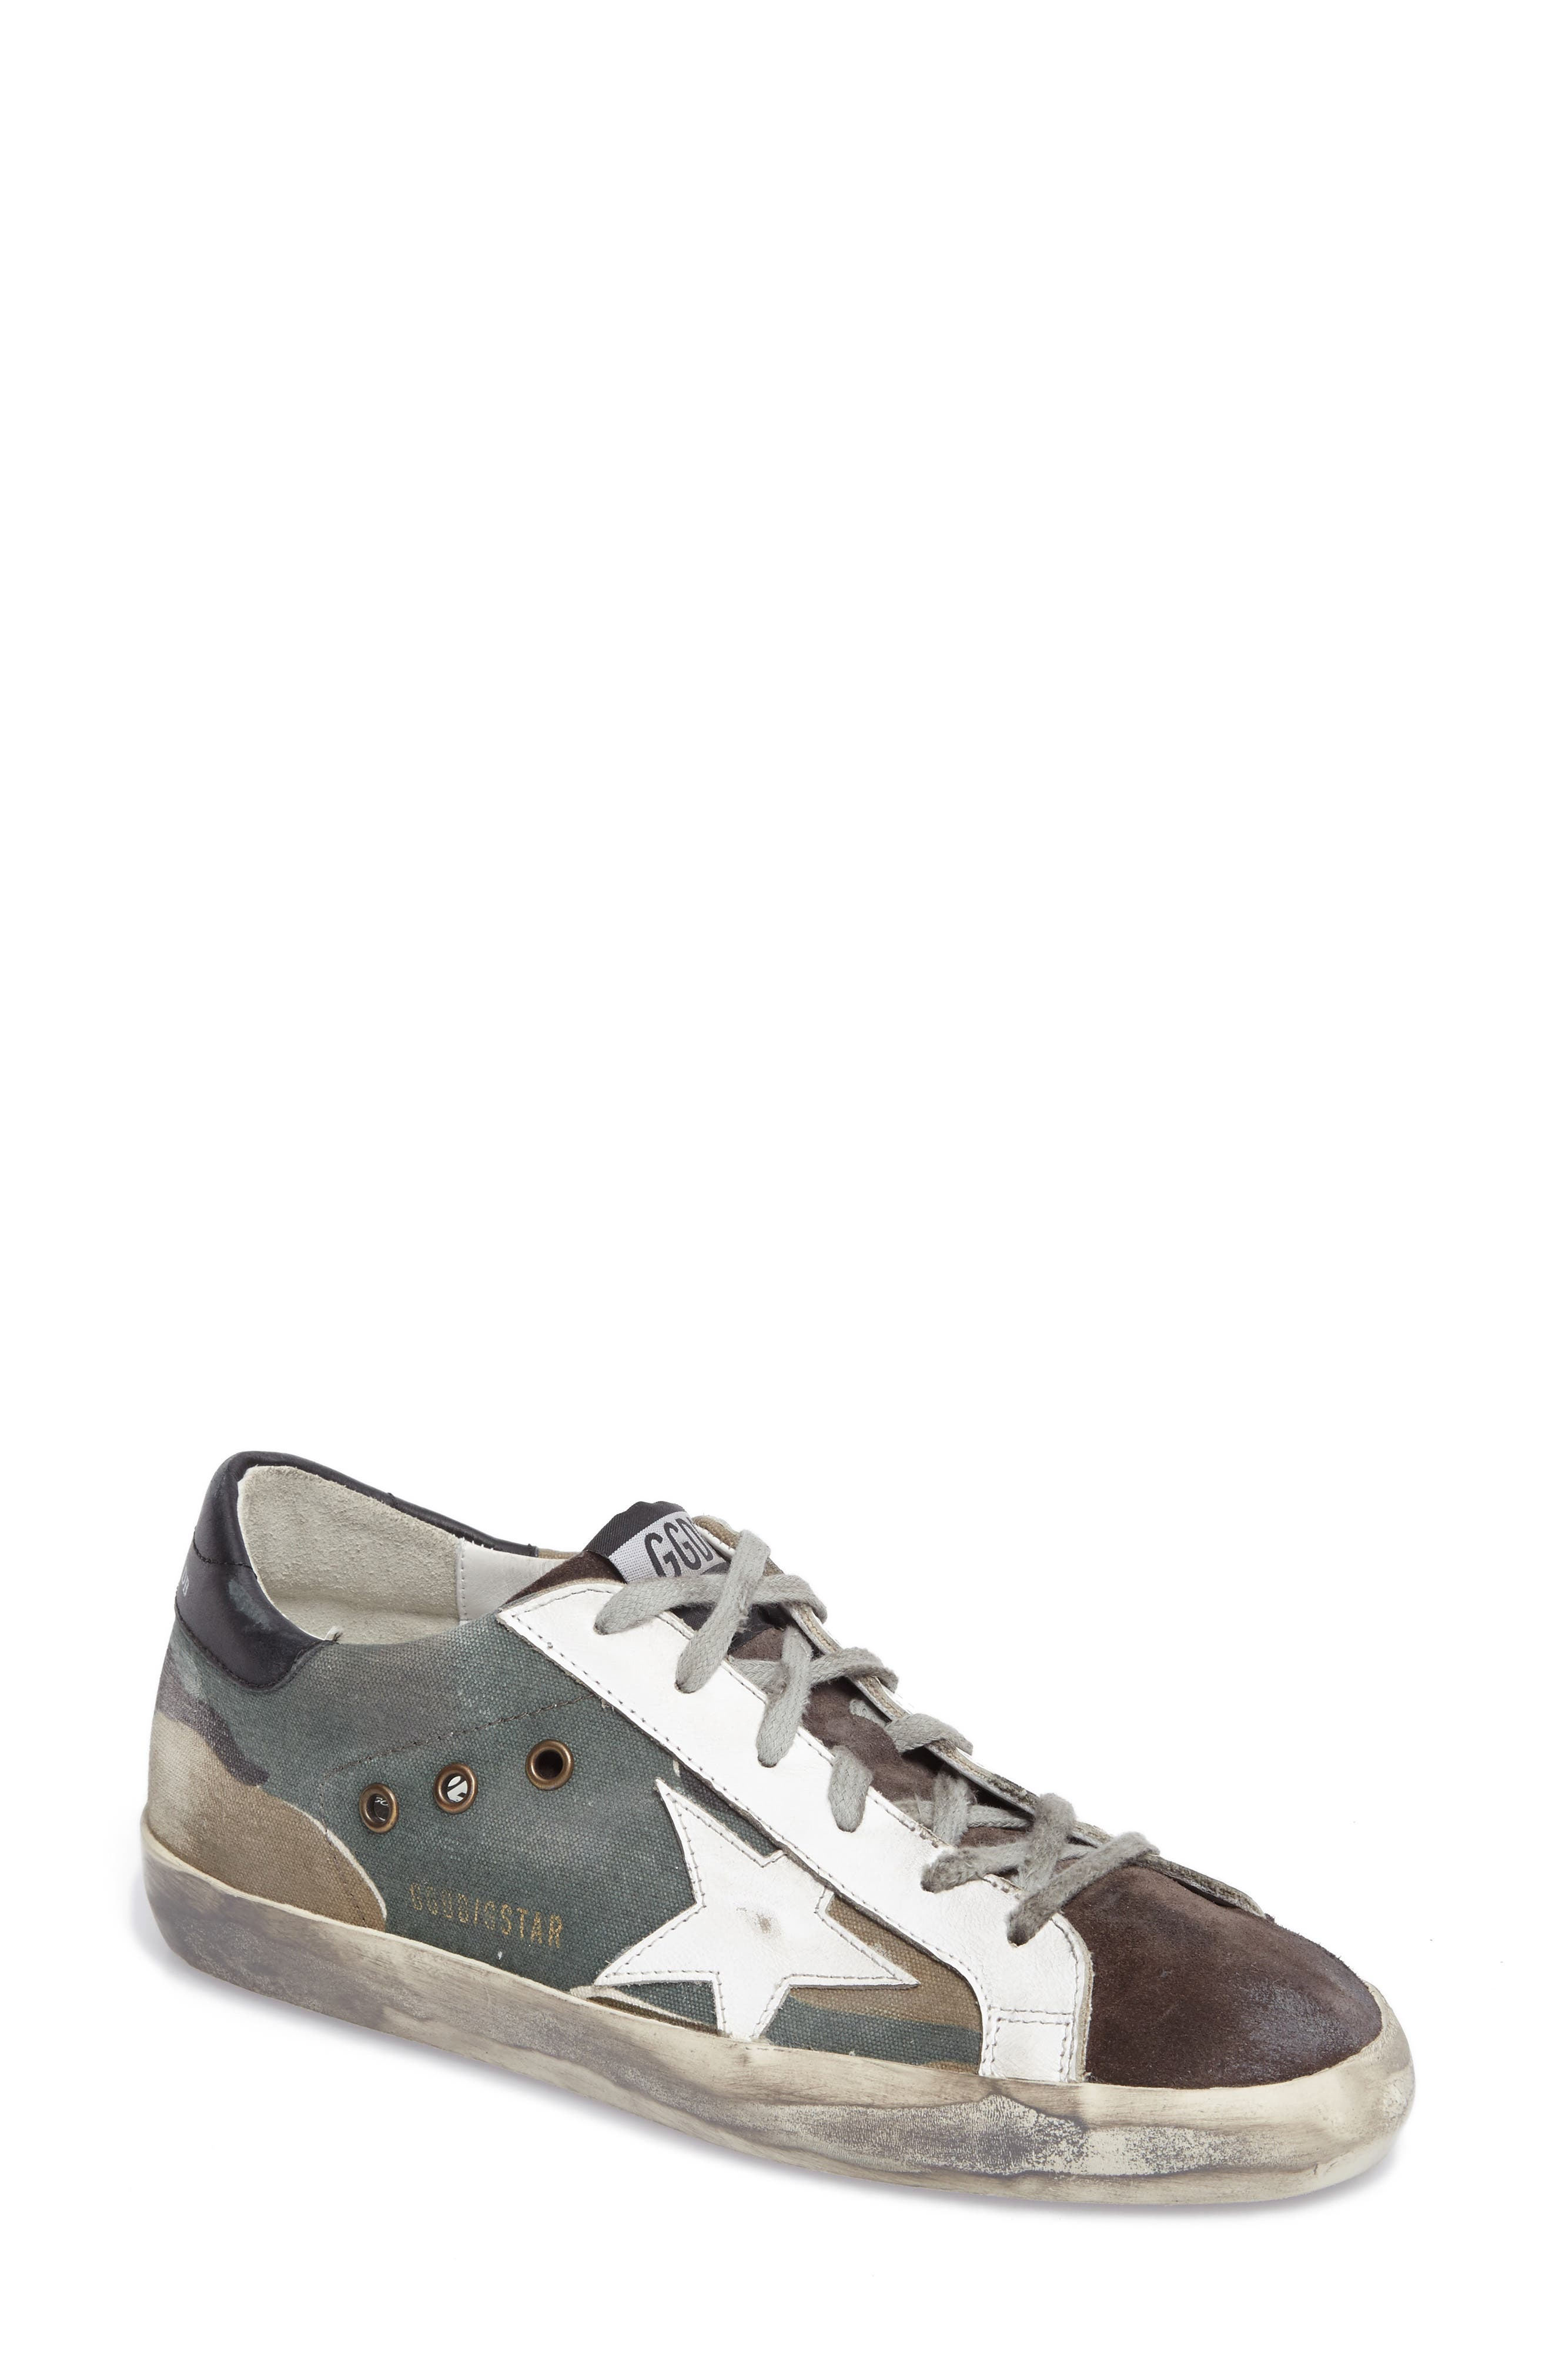 Superstar Low Top Sneaker,                             Main thumbnail 1, color,                             Camou Grey